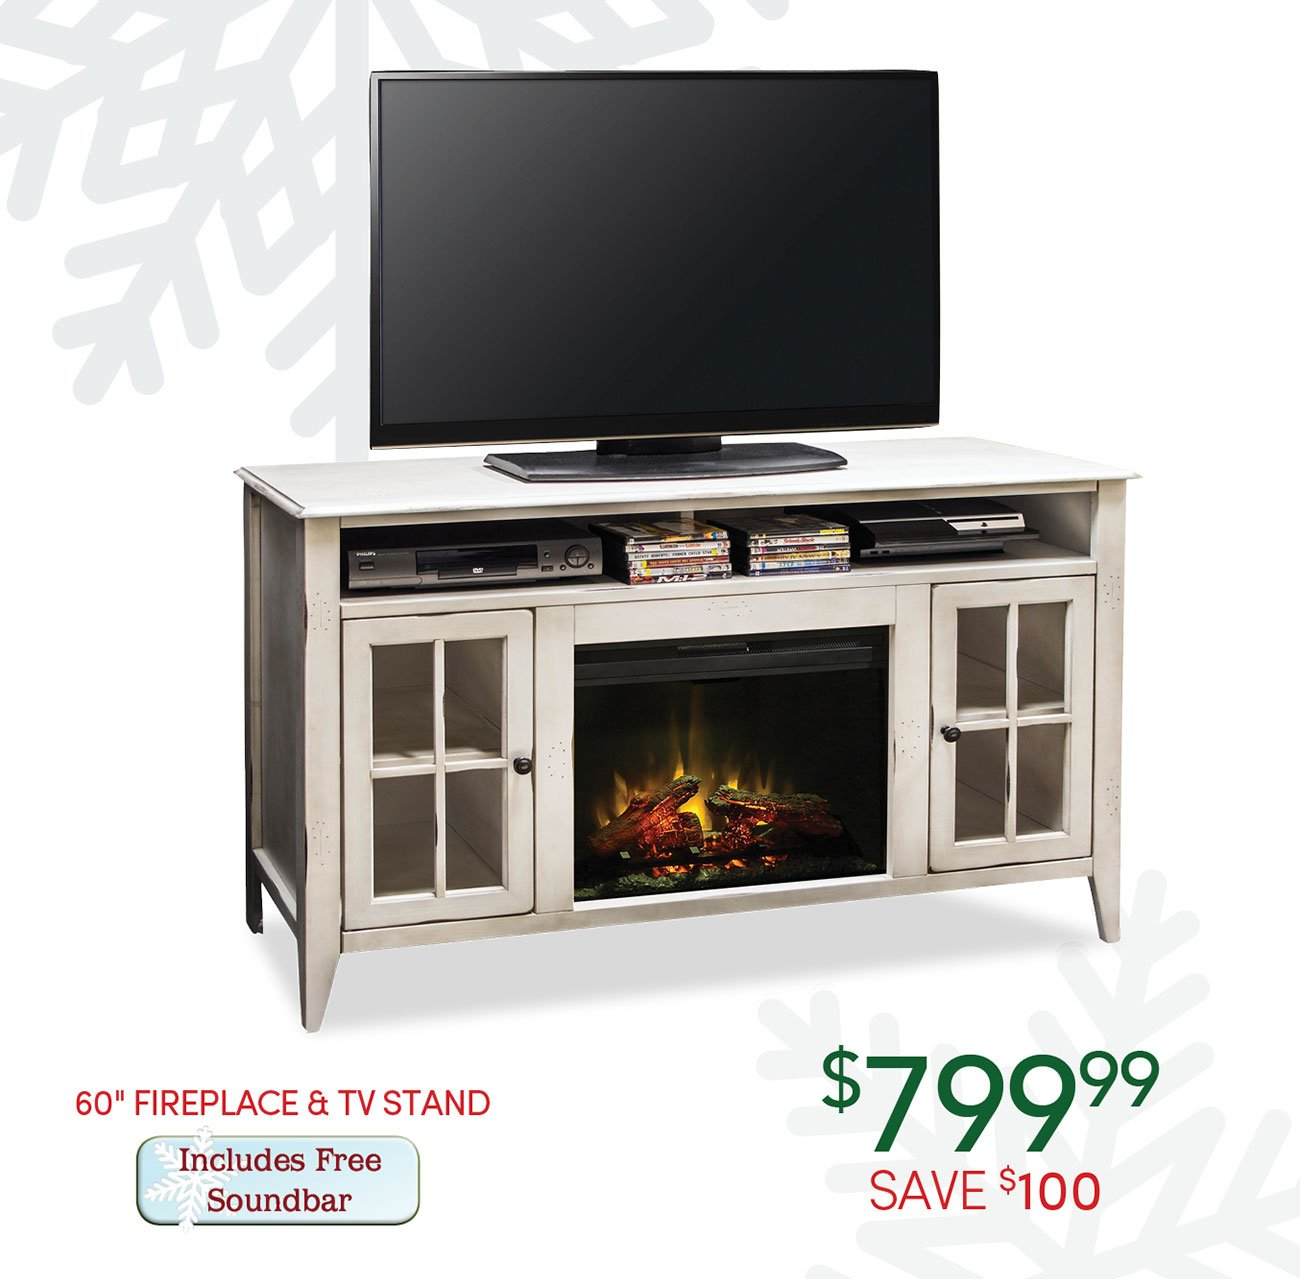 60-inch-Fireplace-and-TV-Stand